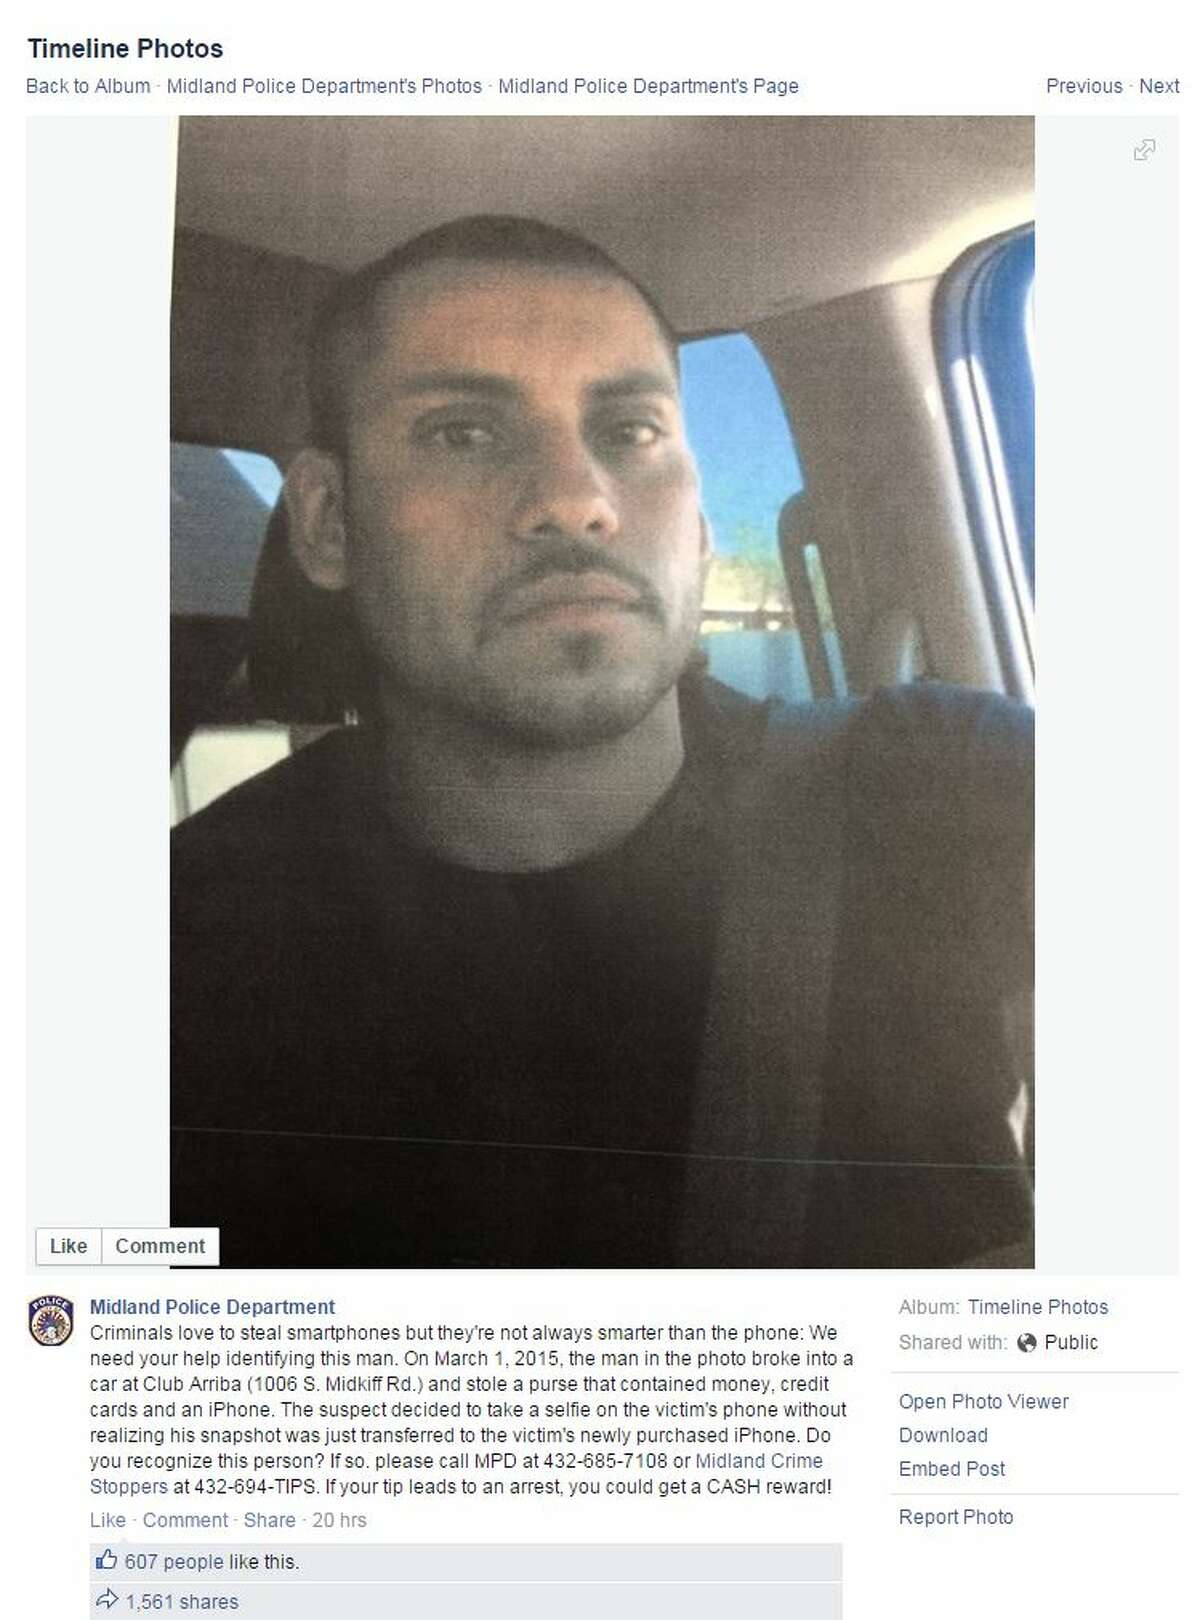 This man allegedly took this selfie with a stolen iPhone, and the photo was transmitted to the original owner's new phone.